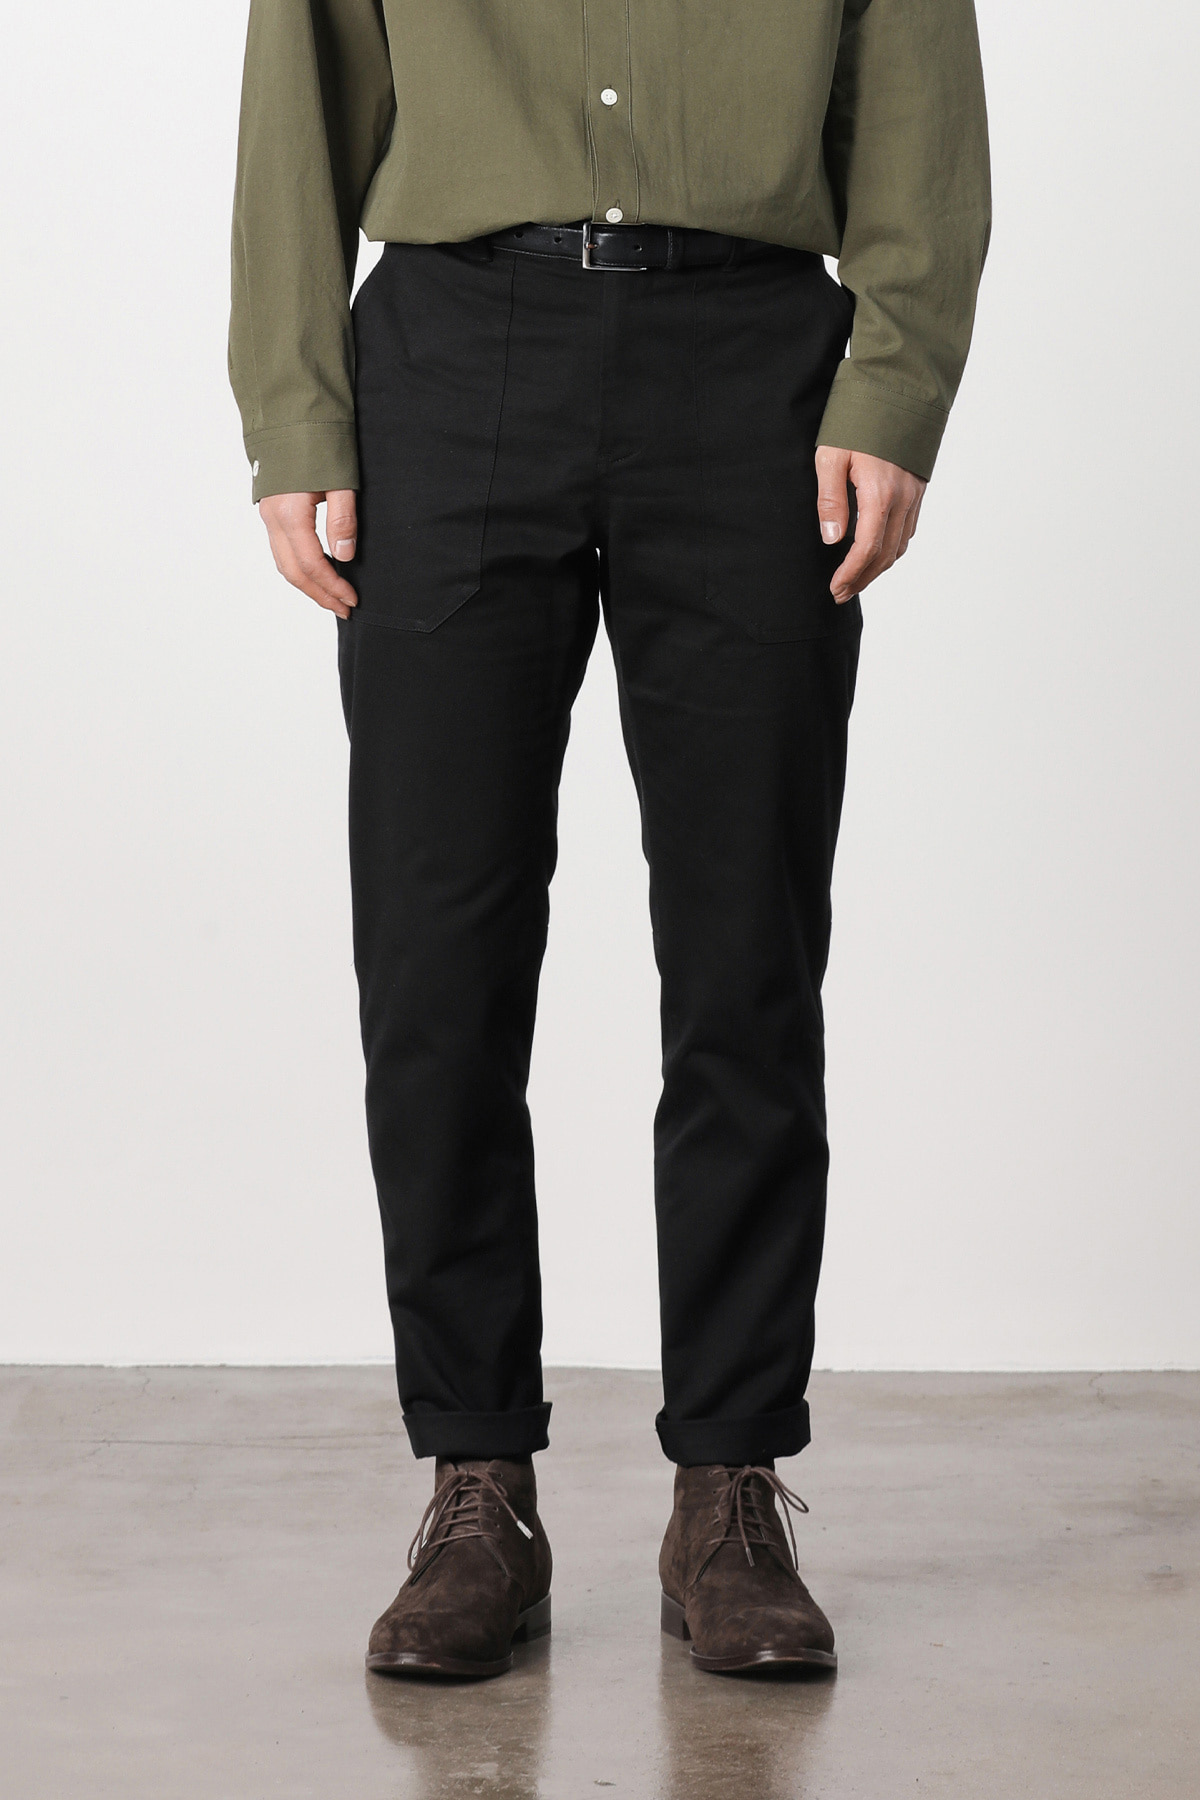 페이탈리즘 #jp07 Fatigue relax cotton pants (black)